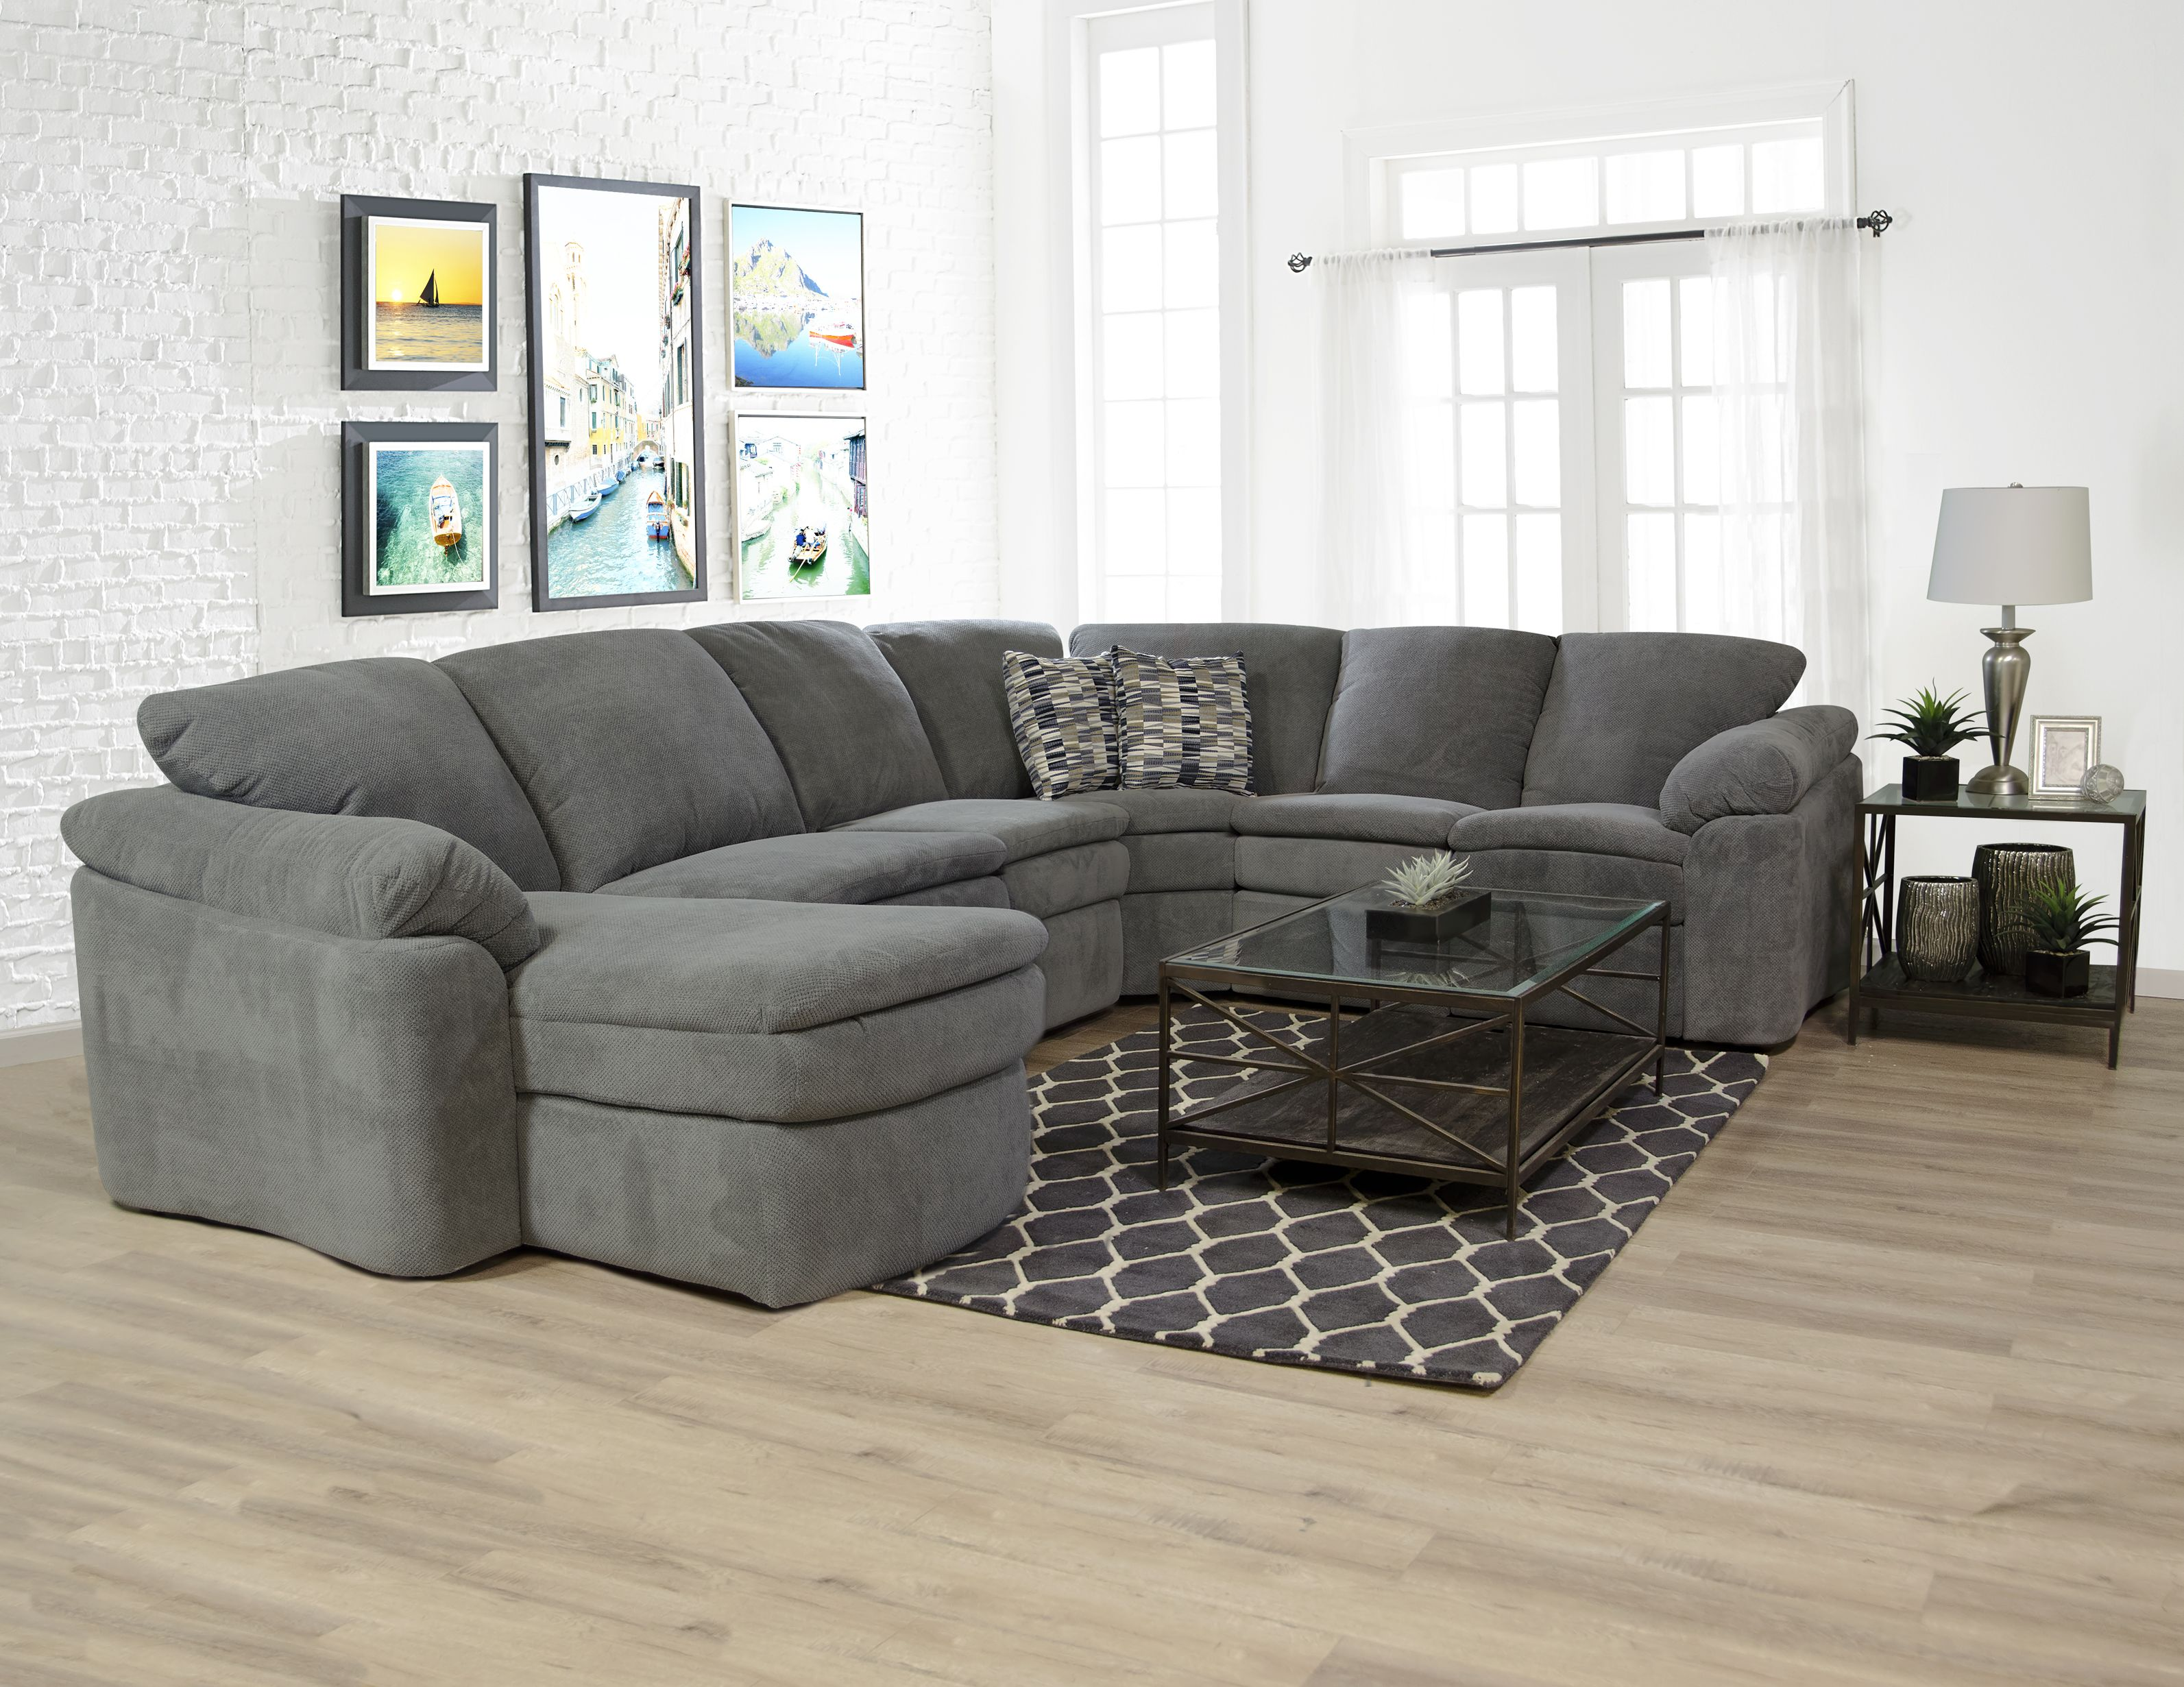 England Furniture 7300 06 7300 40 7300 22 7300 39 7300 57 with